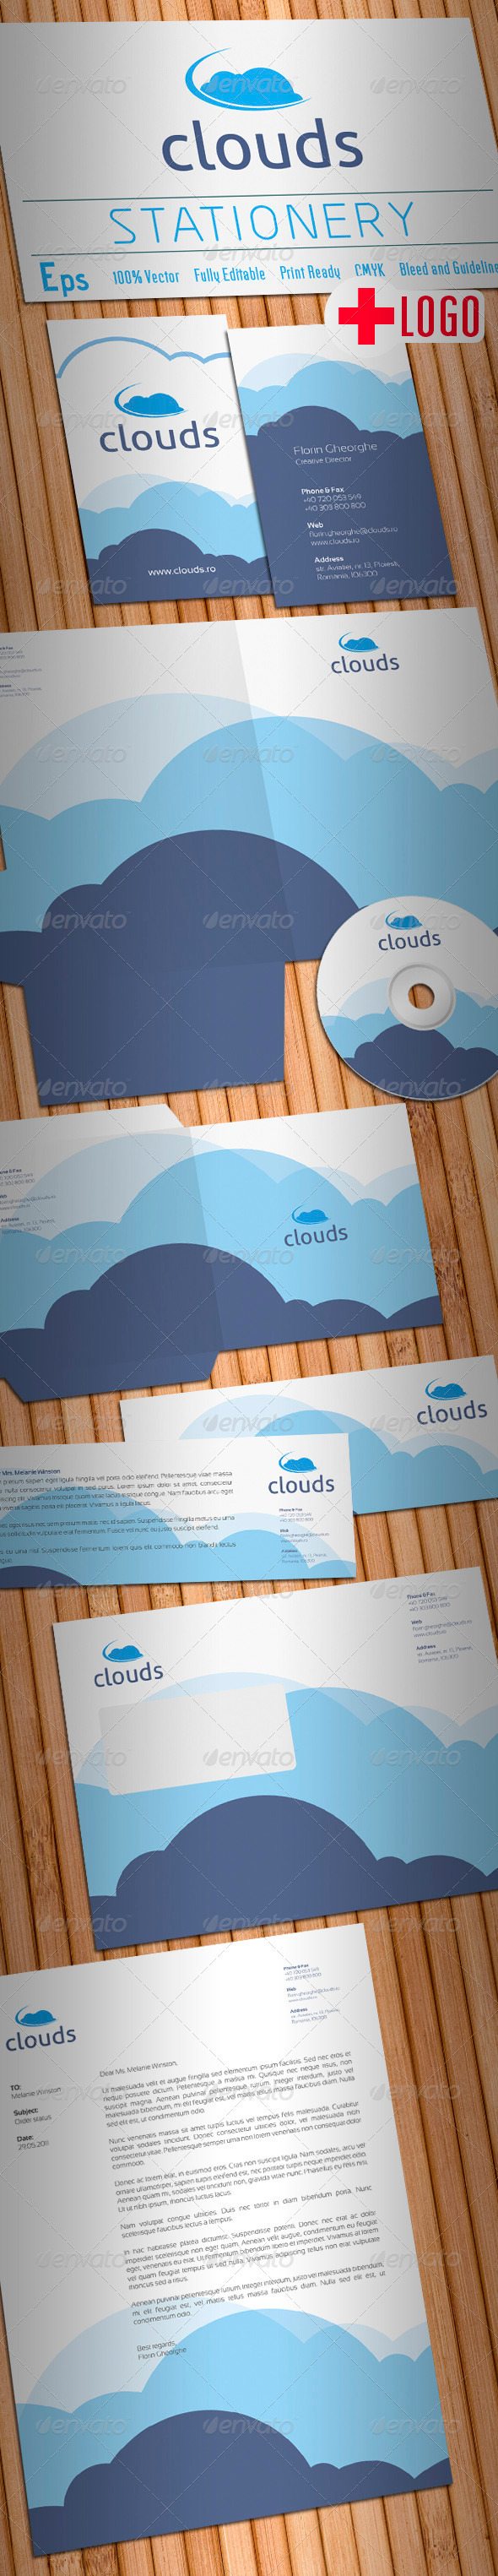 GraphicRiver Clouds Stationery 1188620